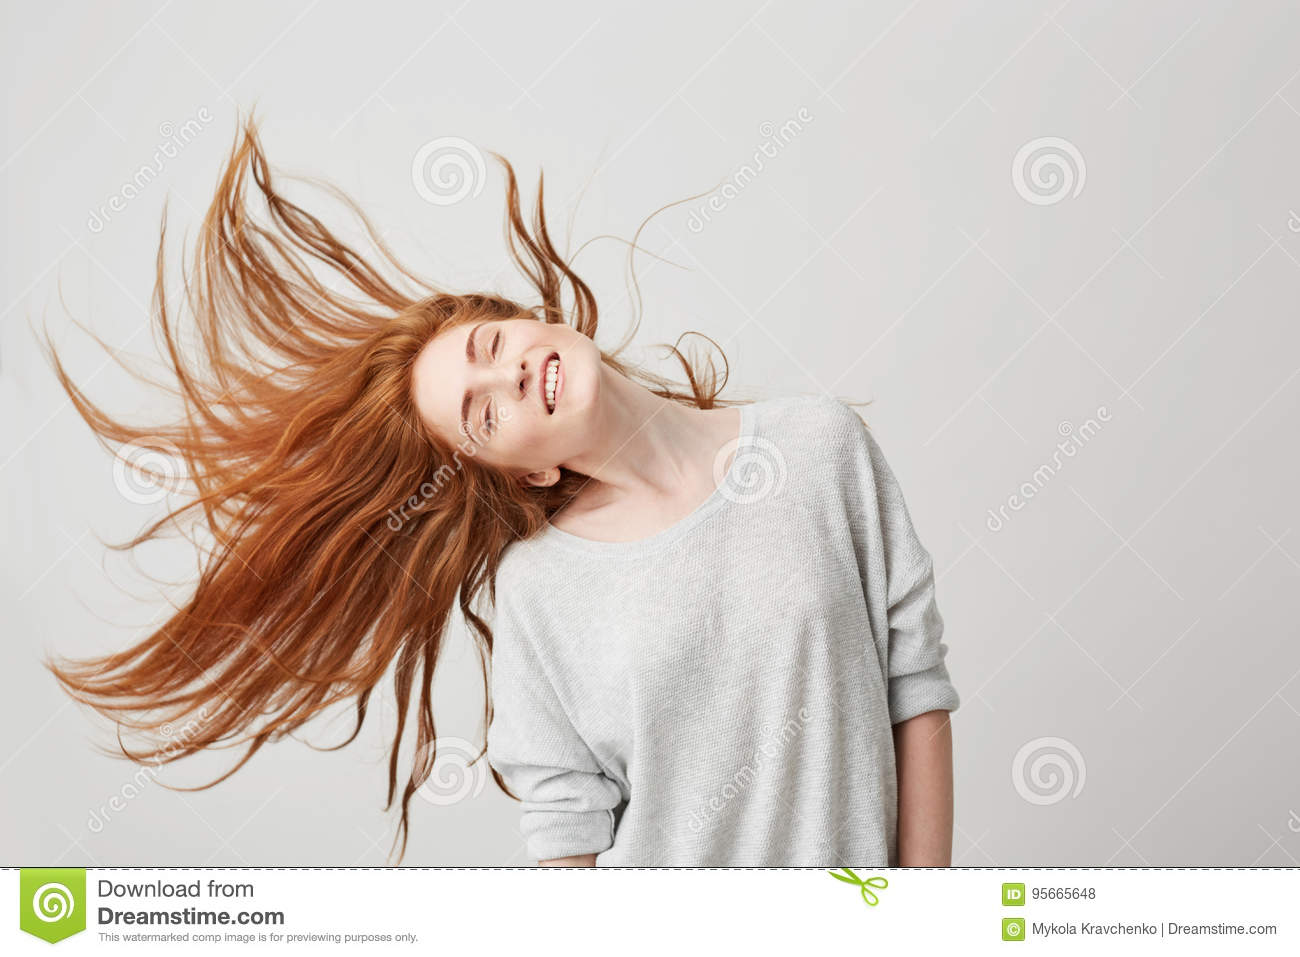 Portrait of young cheerful beautiful redhead girl smiling with closed eyes shaking head and hair over white background.